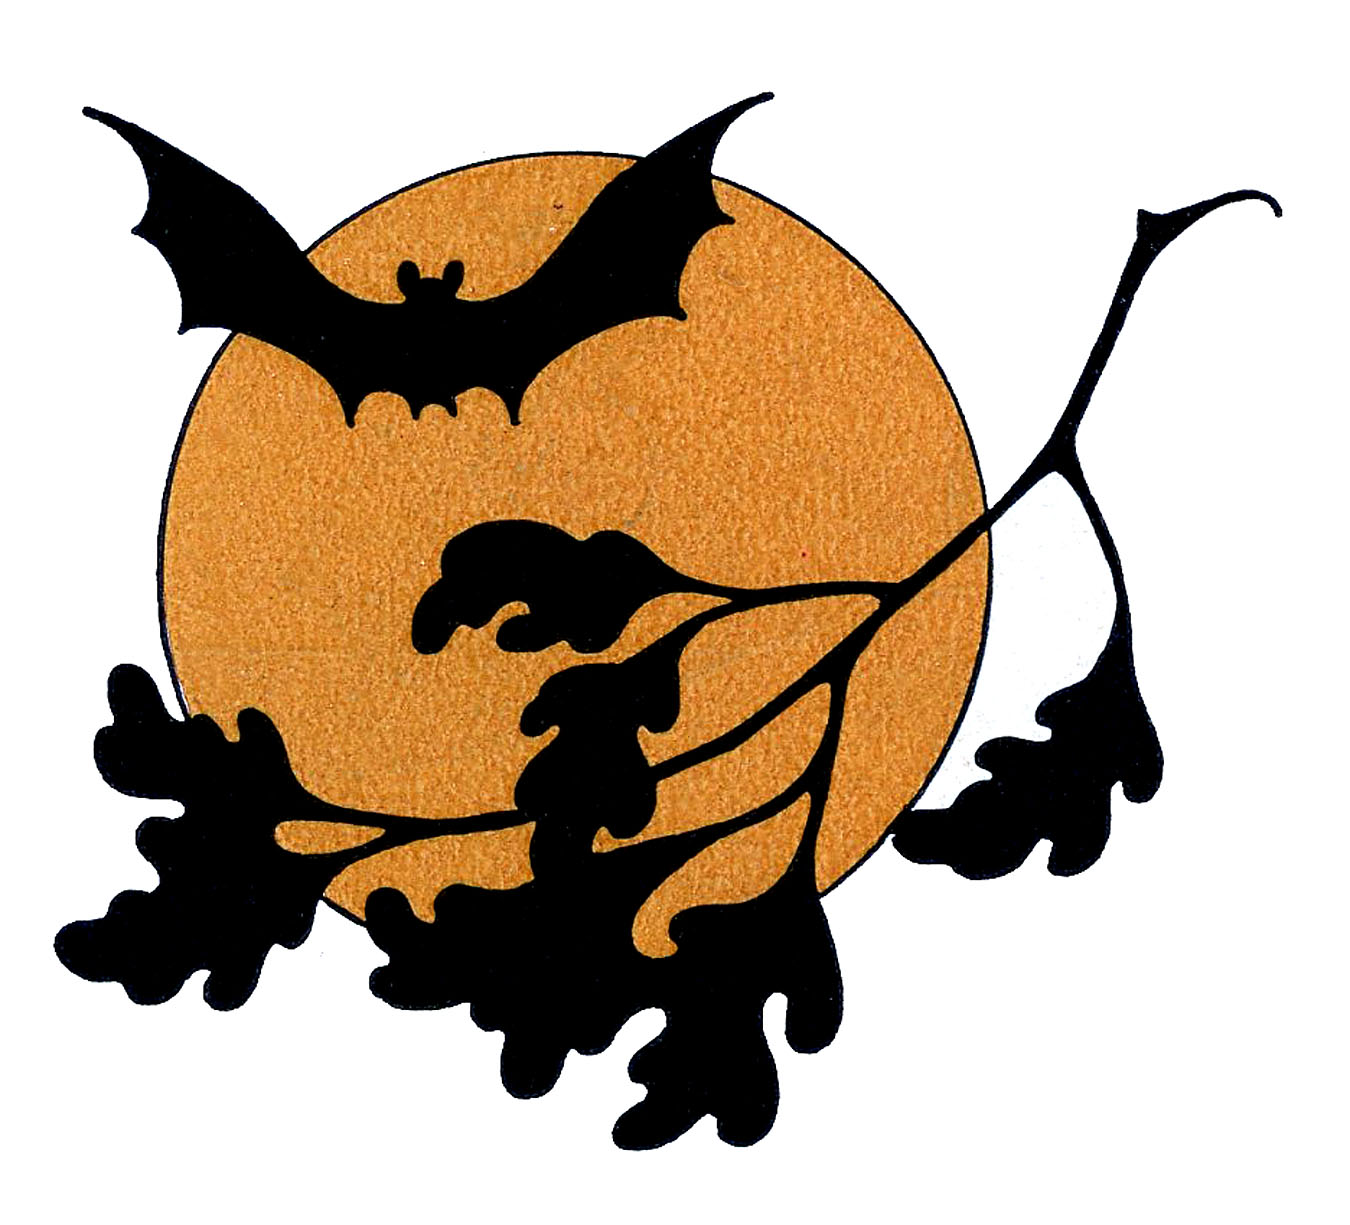 Vintage Halloween Clip Art - Bat with Moon - The Graphics Fairy